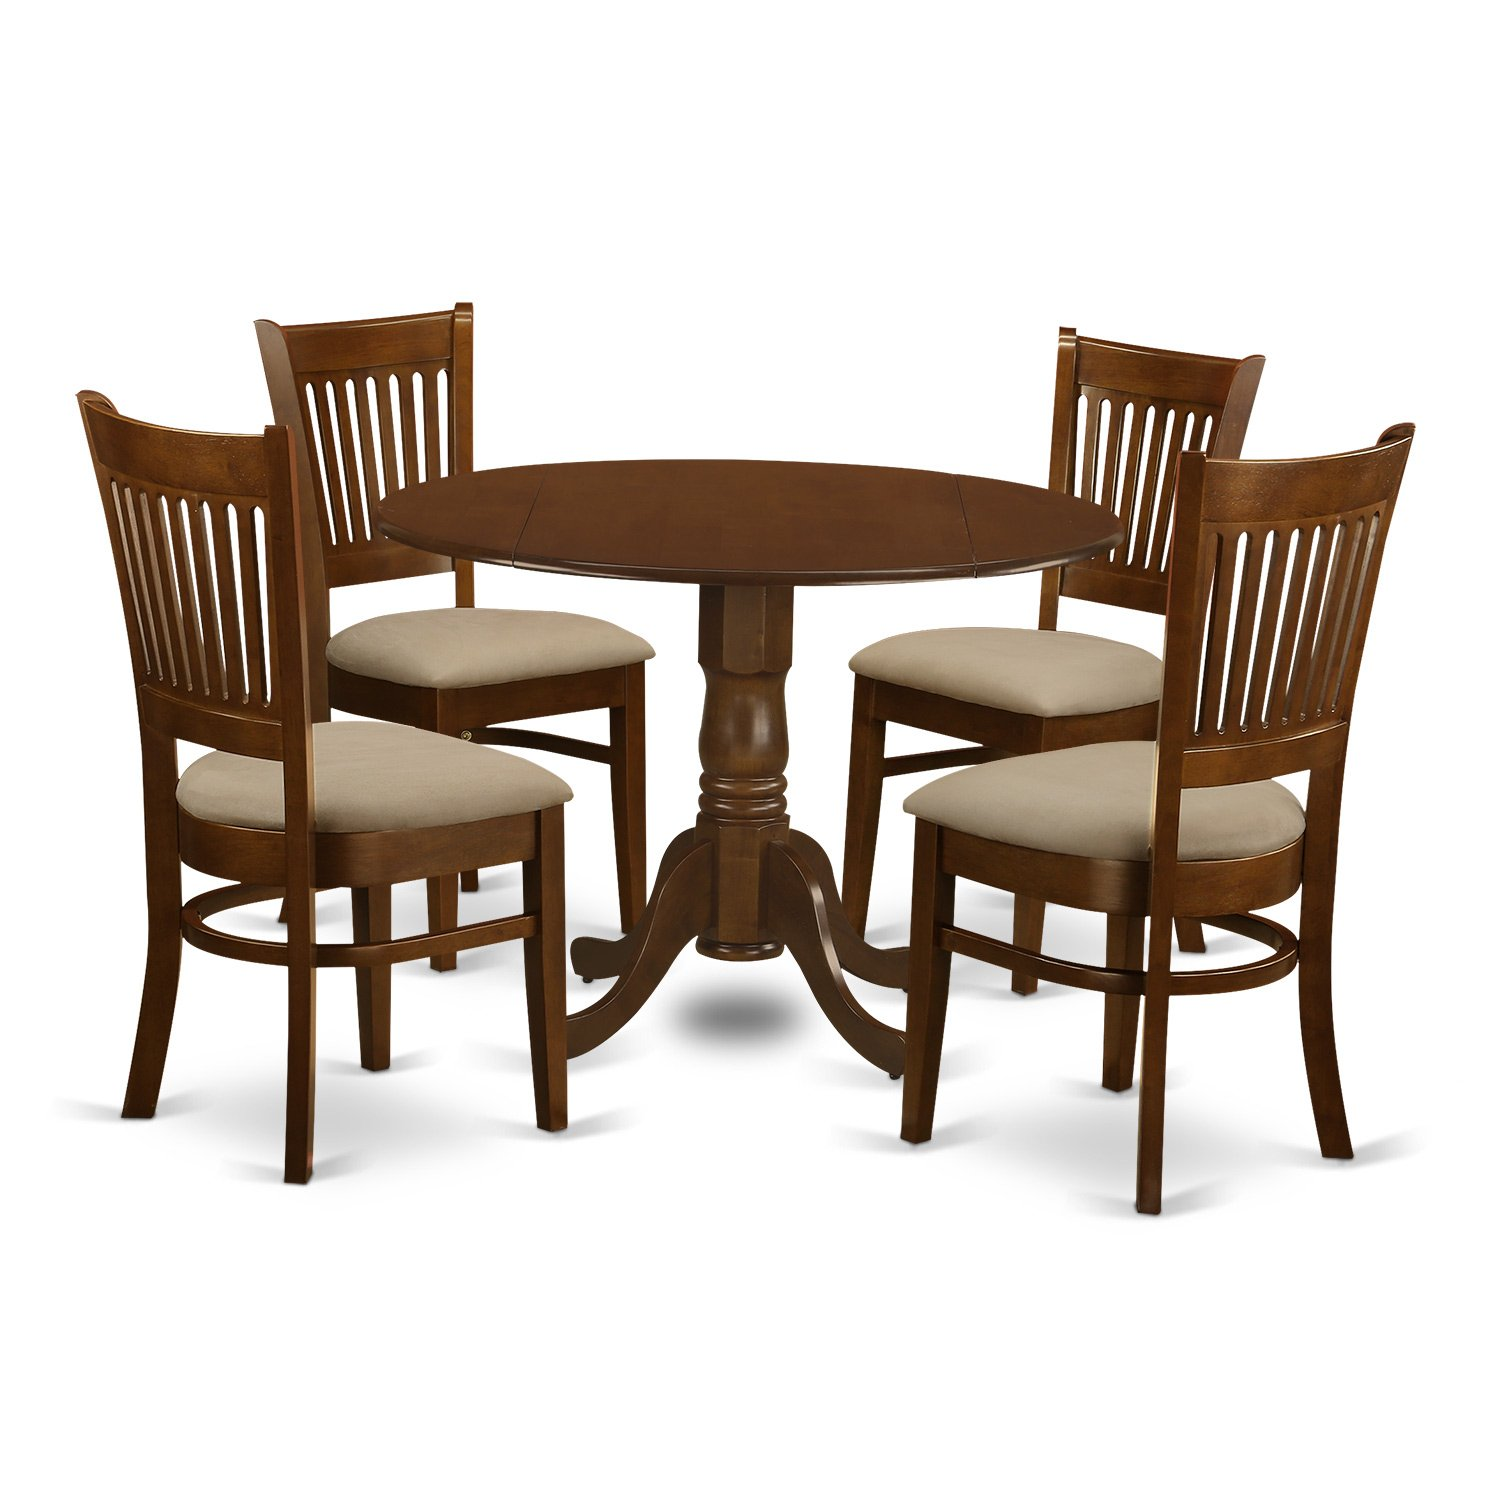 East West Furniture DLVA5-ESP-C 5 Piece Set Dublin Dinette Table with Two Drop Leaf 9'' and Four Cushioned Seat Kitchen Chairs in Espresso by East West Furniture